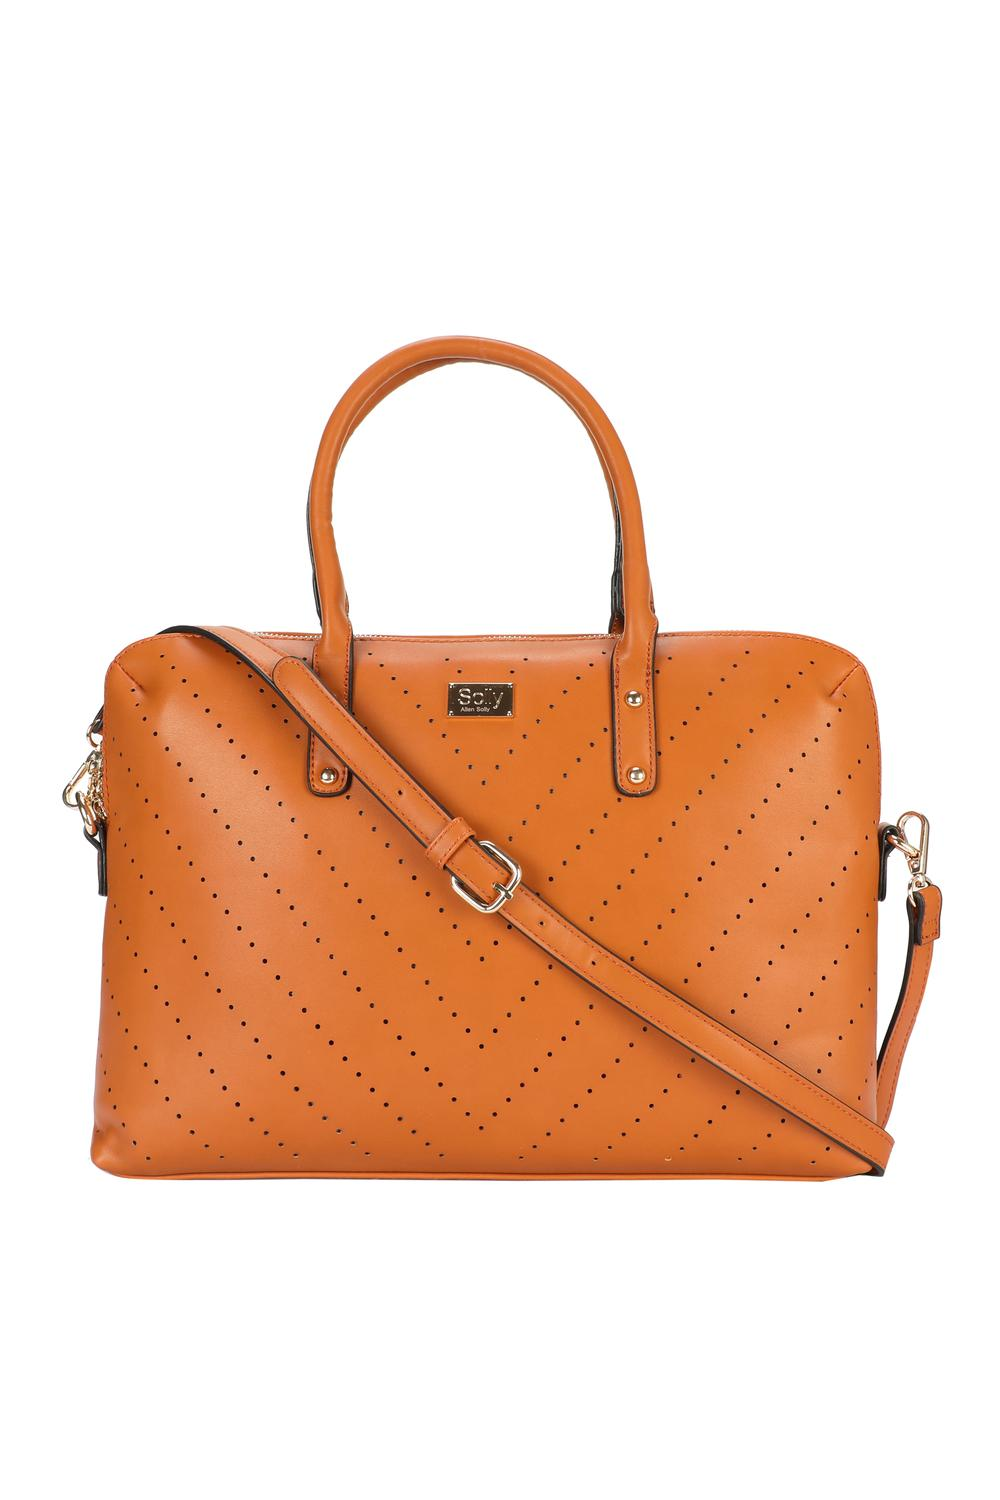 Solly Fashion Accessories Allen Tan Laptop Bag For Women At Allensolly